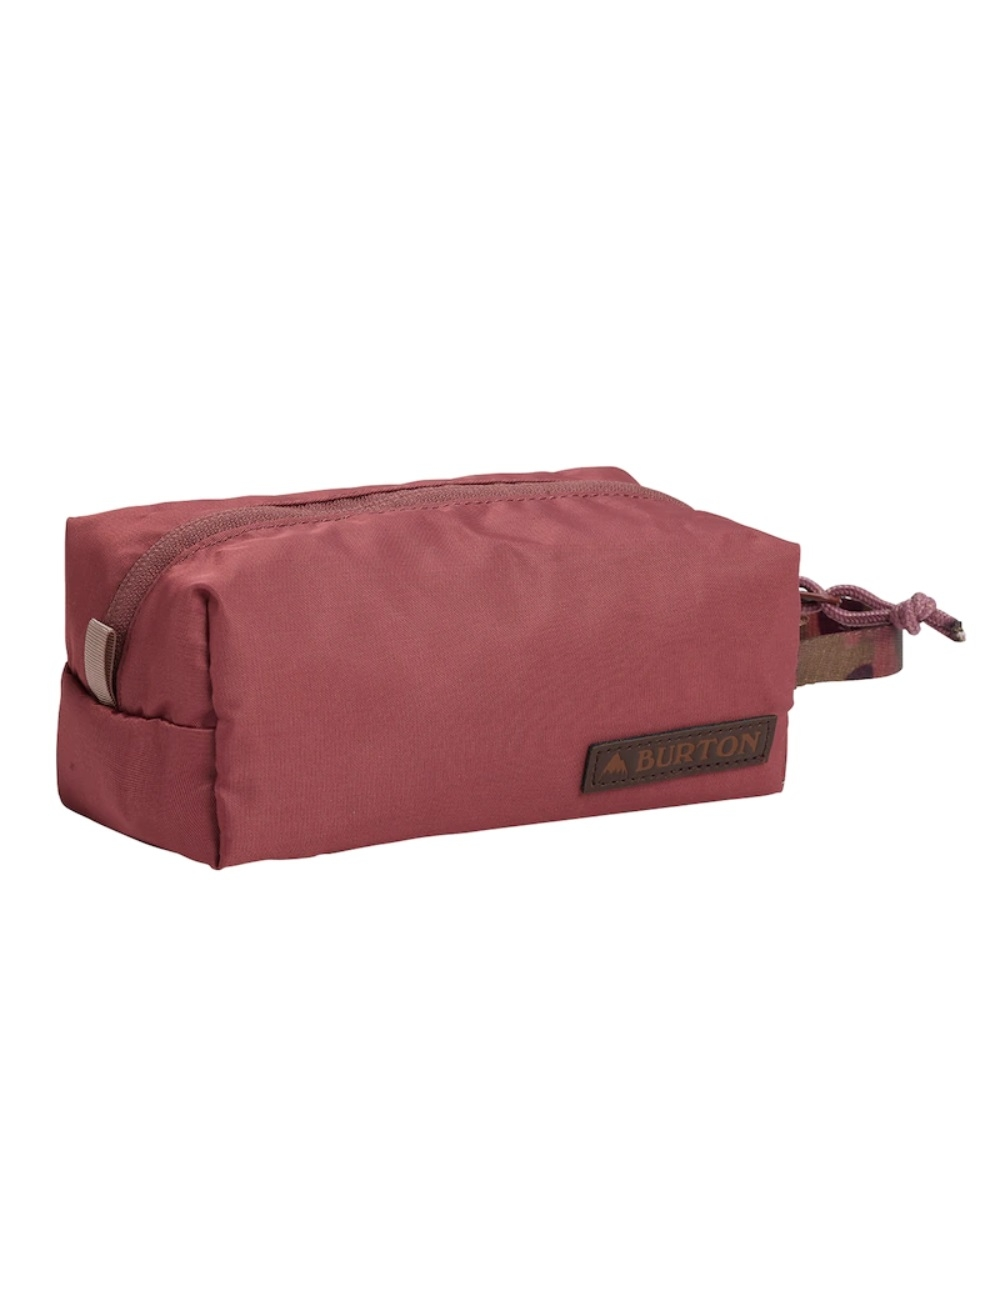 Burton Accessory Case Rose Brown Flight Satin